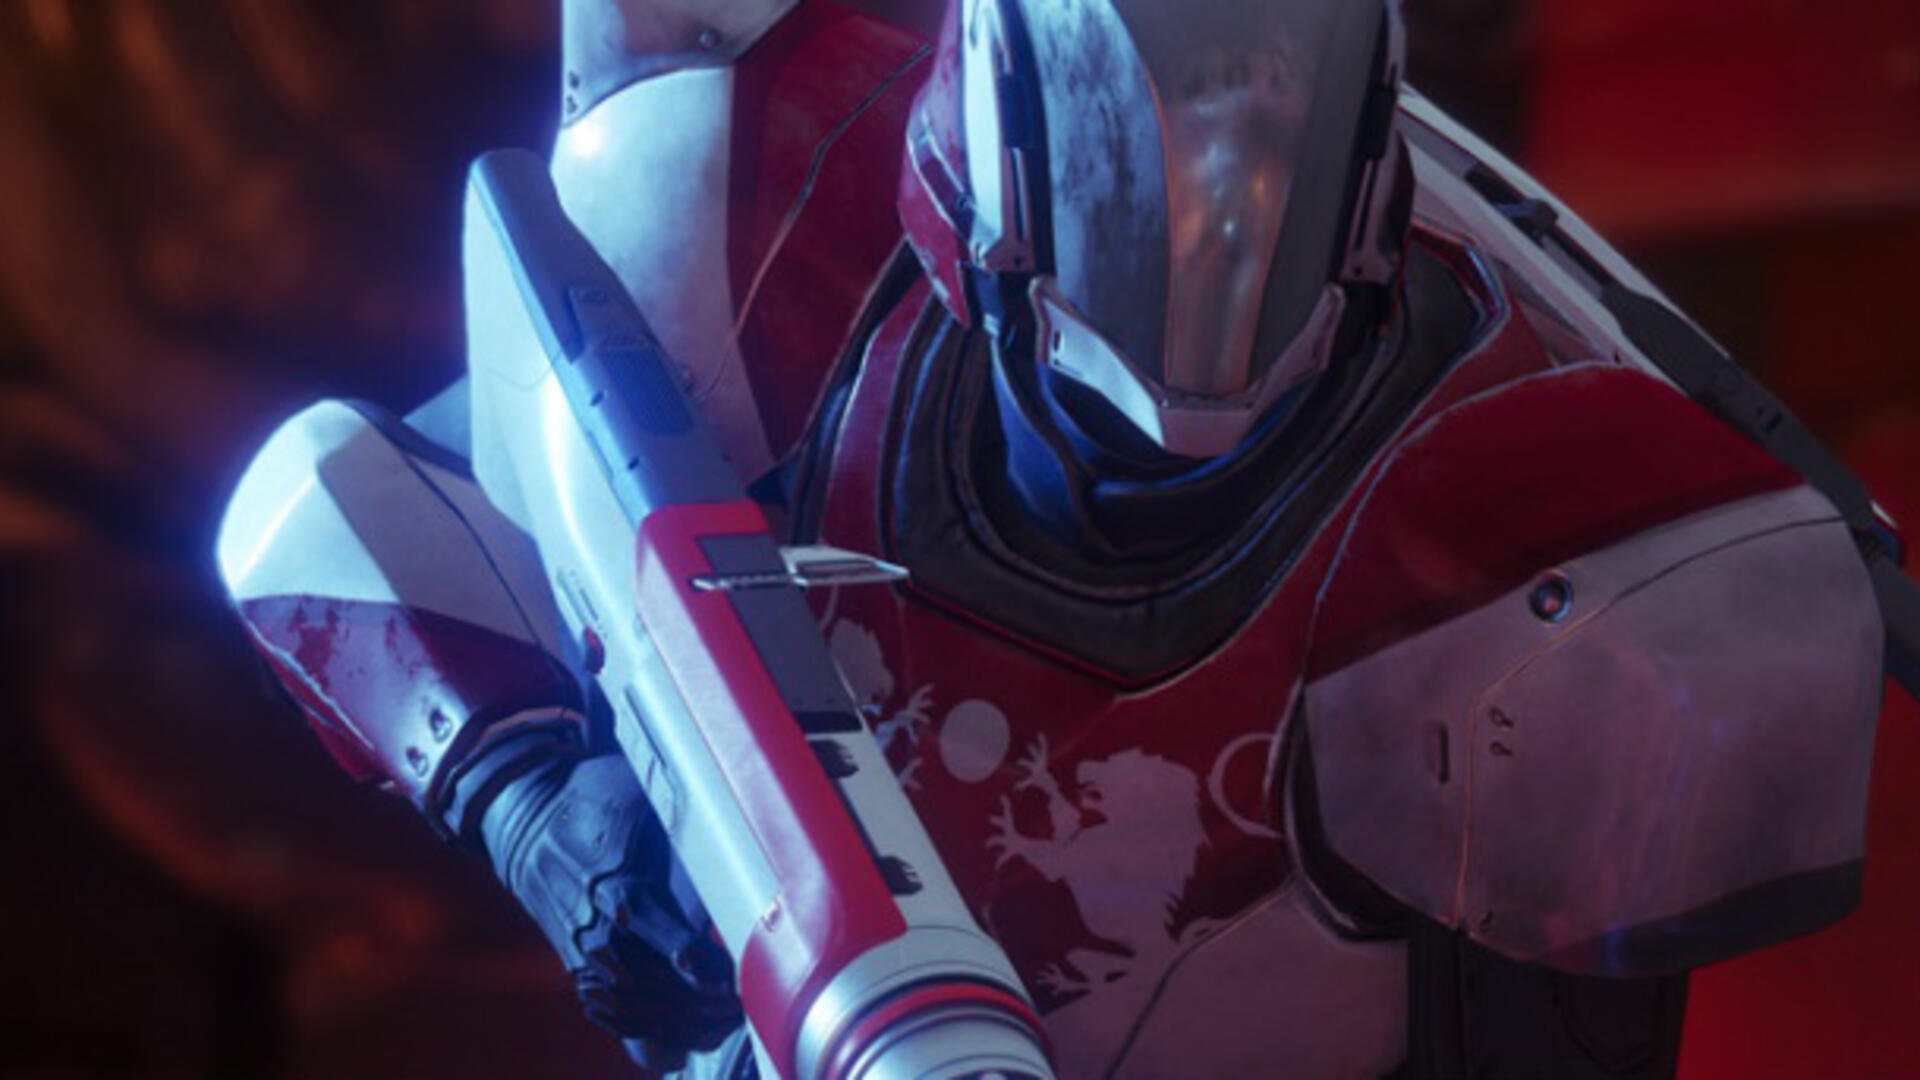 Destiny 2 Combat Changes for Year 2 Being Revealed Tomorrow